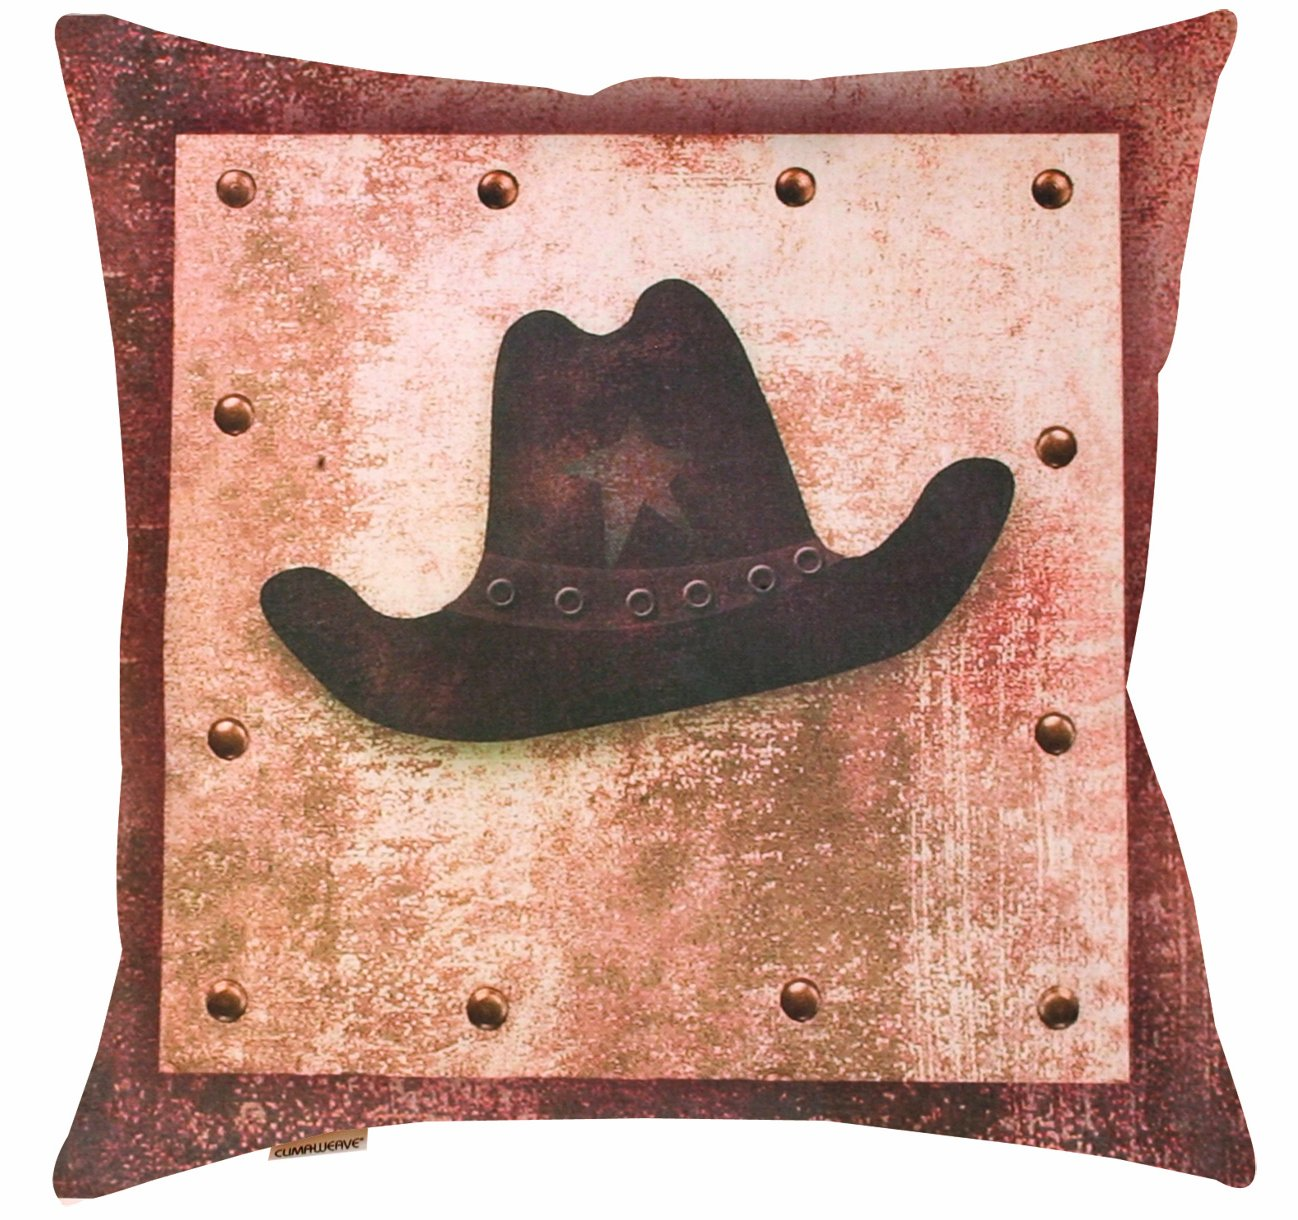 Manual Climaweave Indoor/Outdoor Throw Pillow, Saddle Up Hat, 20 X 20-Inch